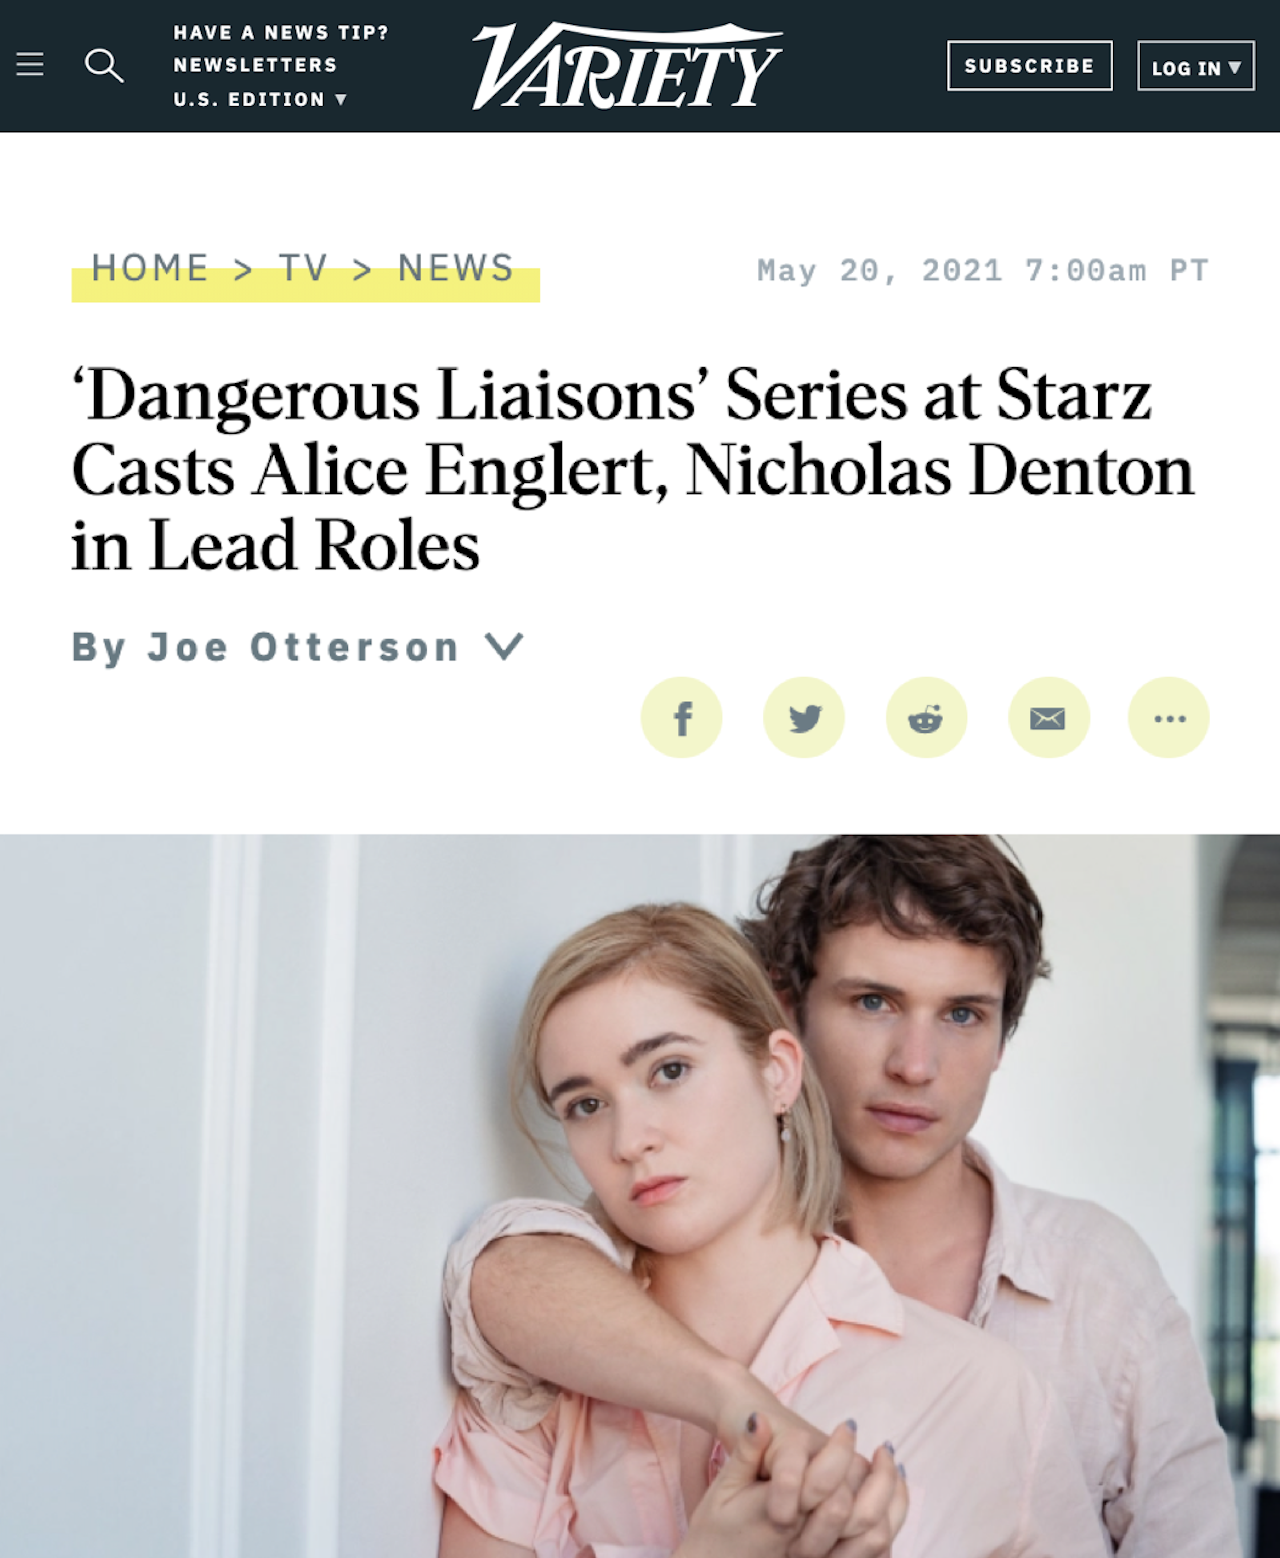 Leonora Lonsdale to direct series reimagining the classic 'Dangerous Liaisons'